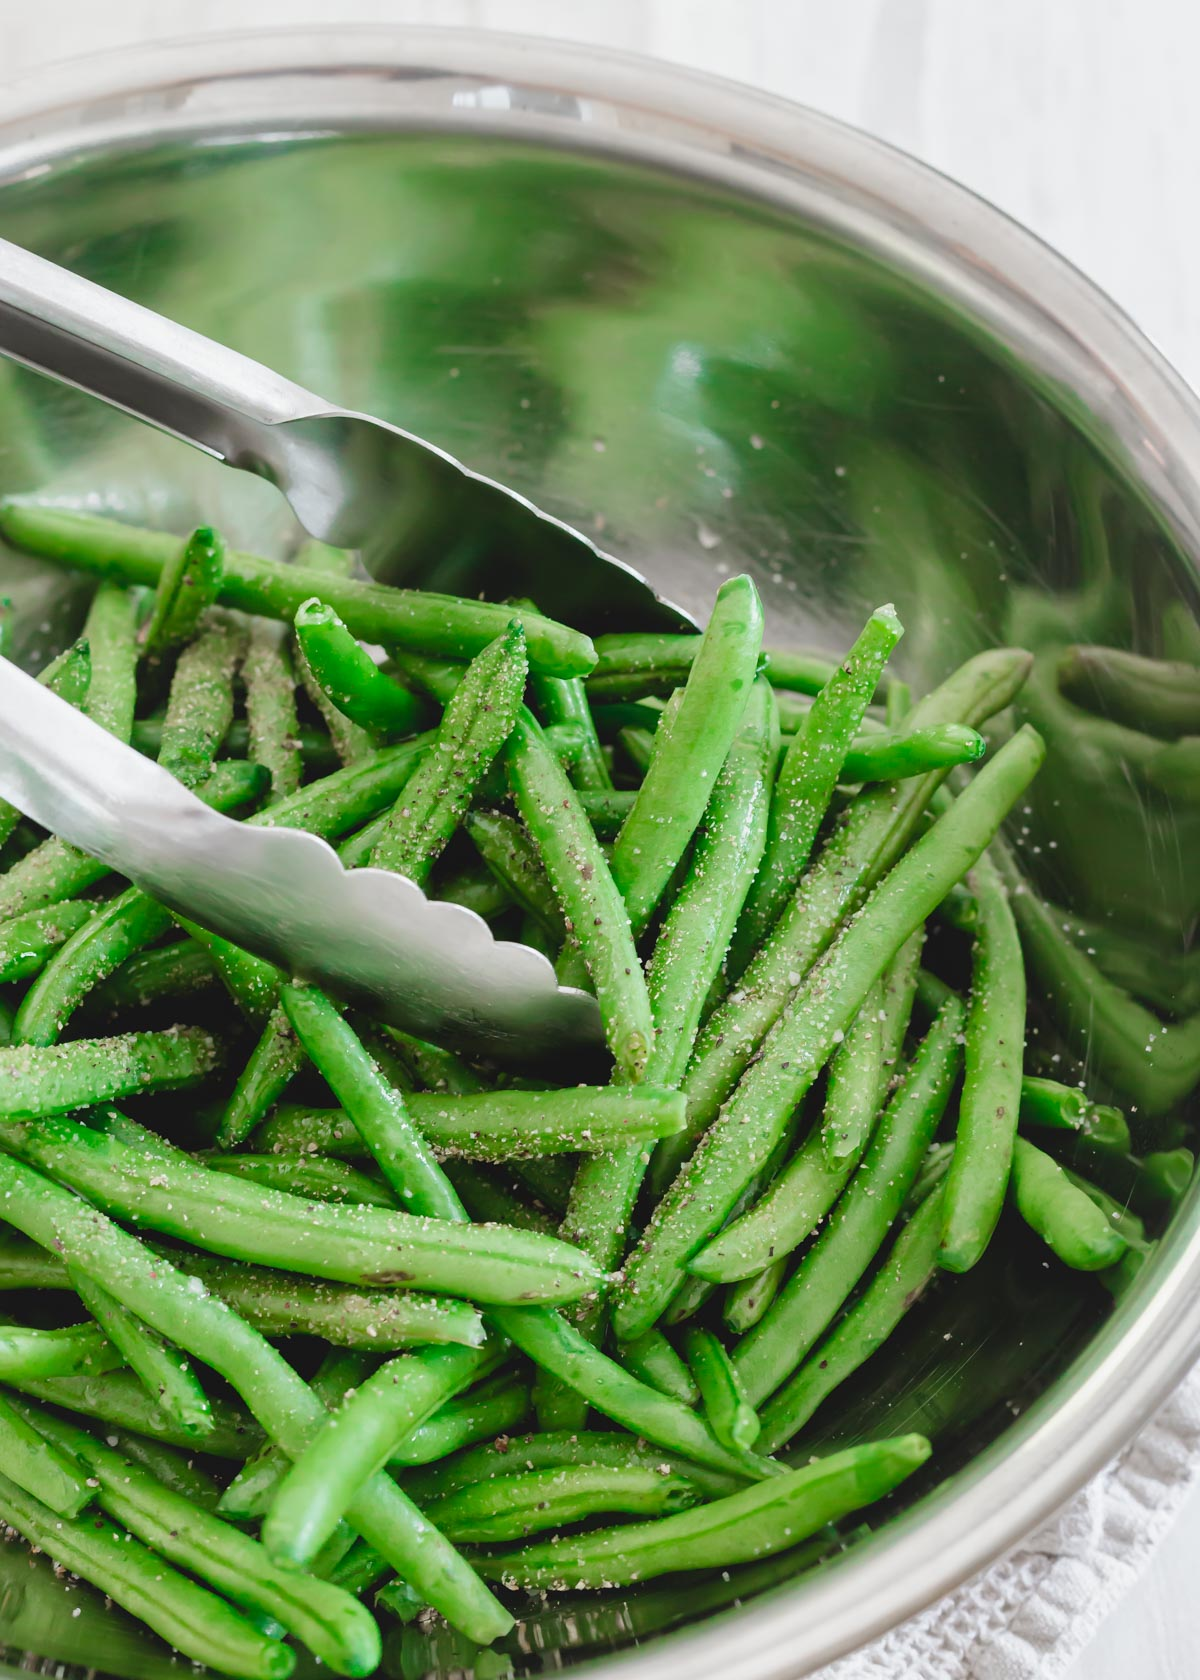 Green beans with garlic powder, salt and pepper in a metal bowl with tongs.